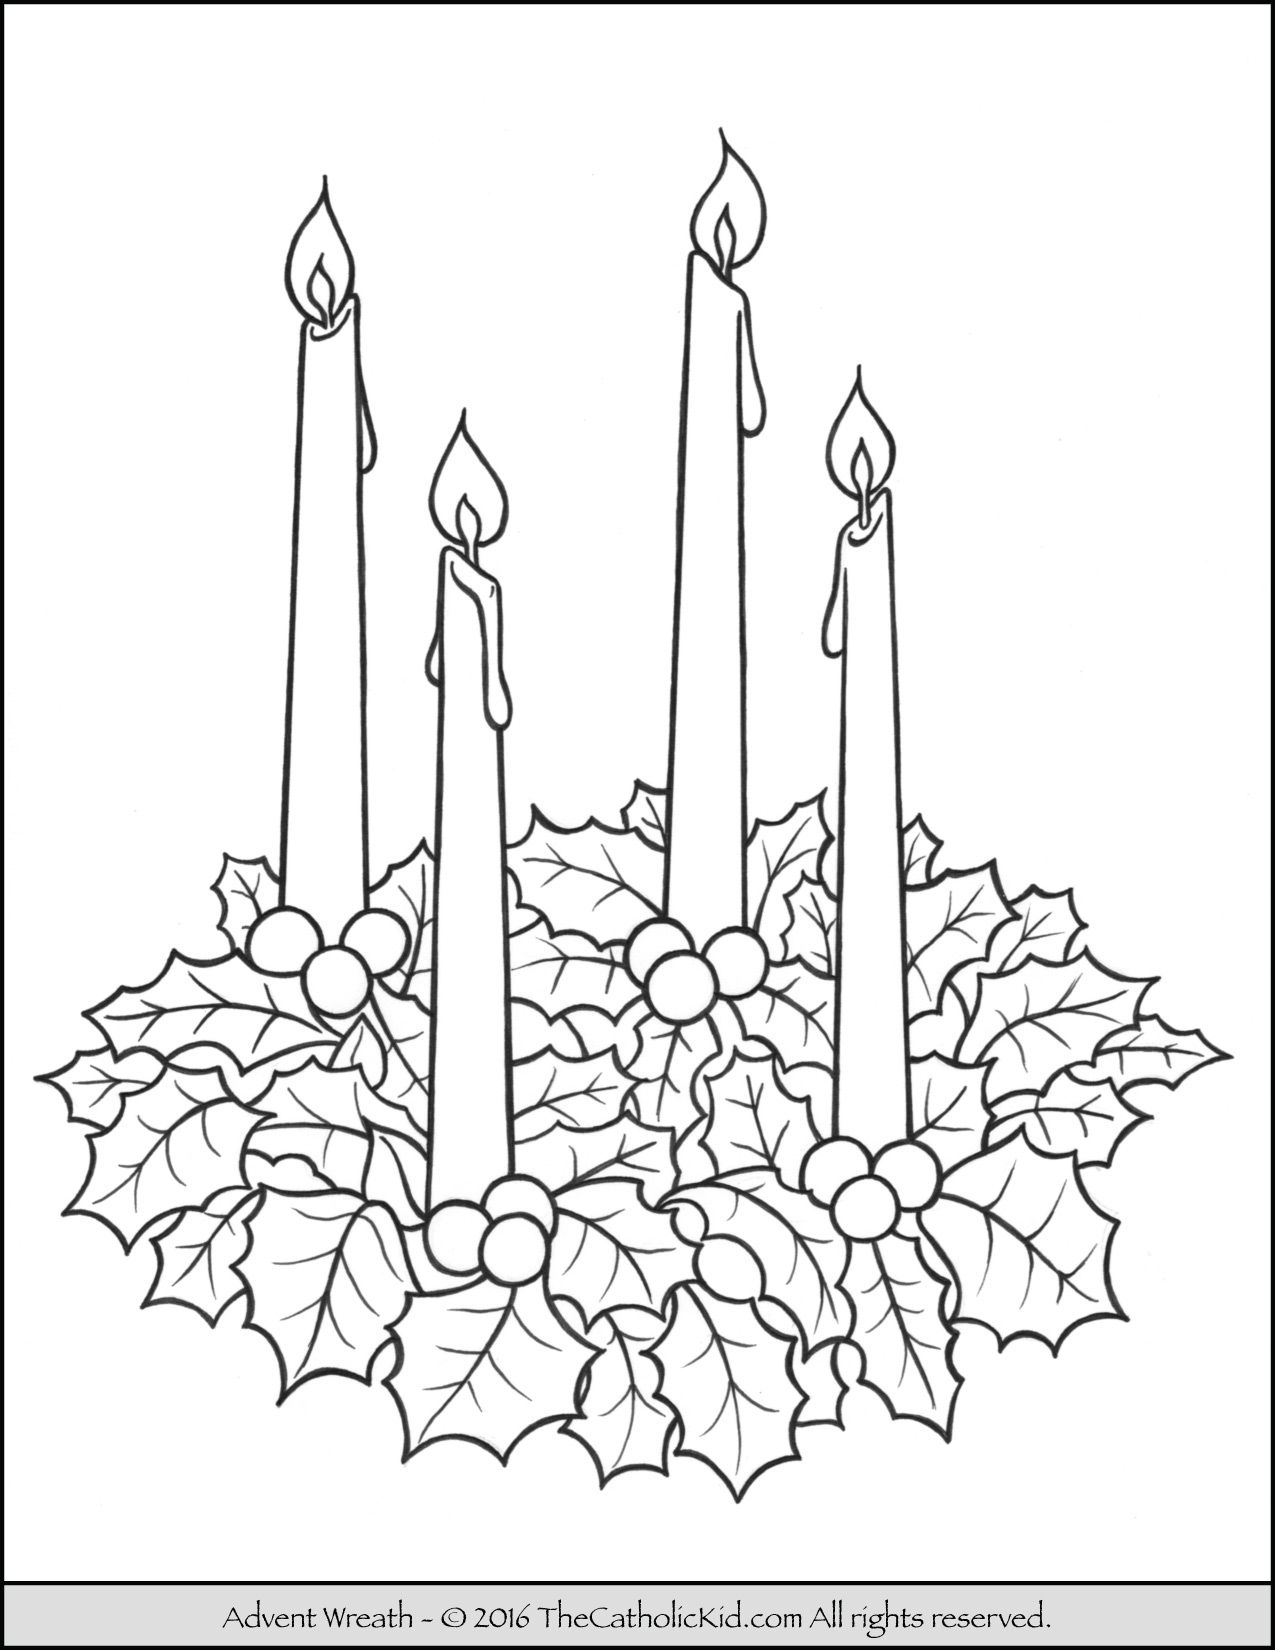 Advent Wreath Coloring Page Advent Coloring Christmas Coloring Pages Advent Wreath